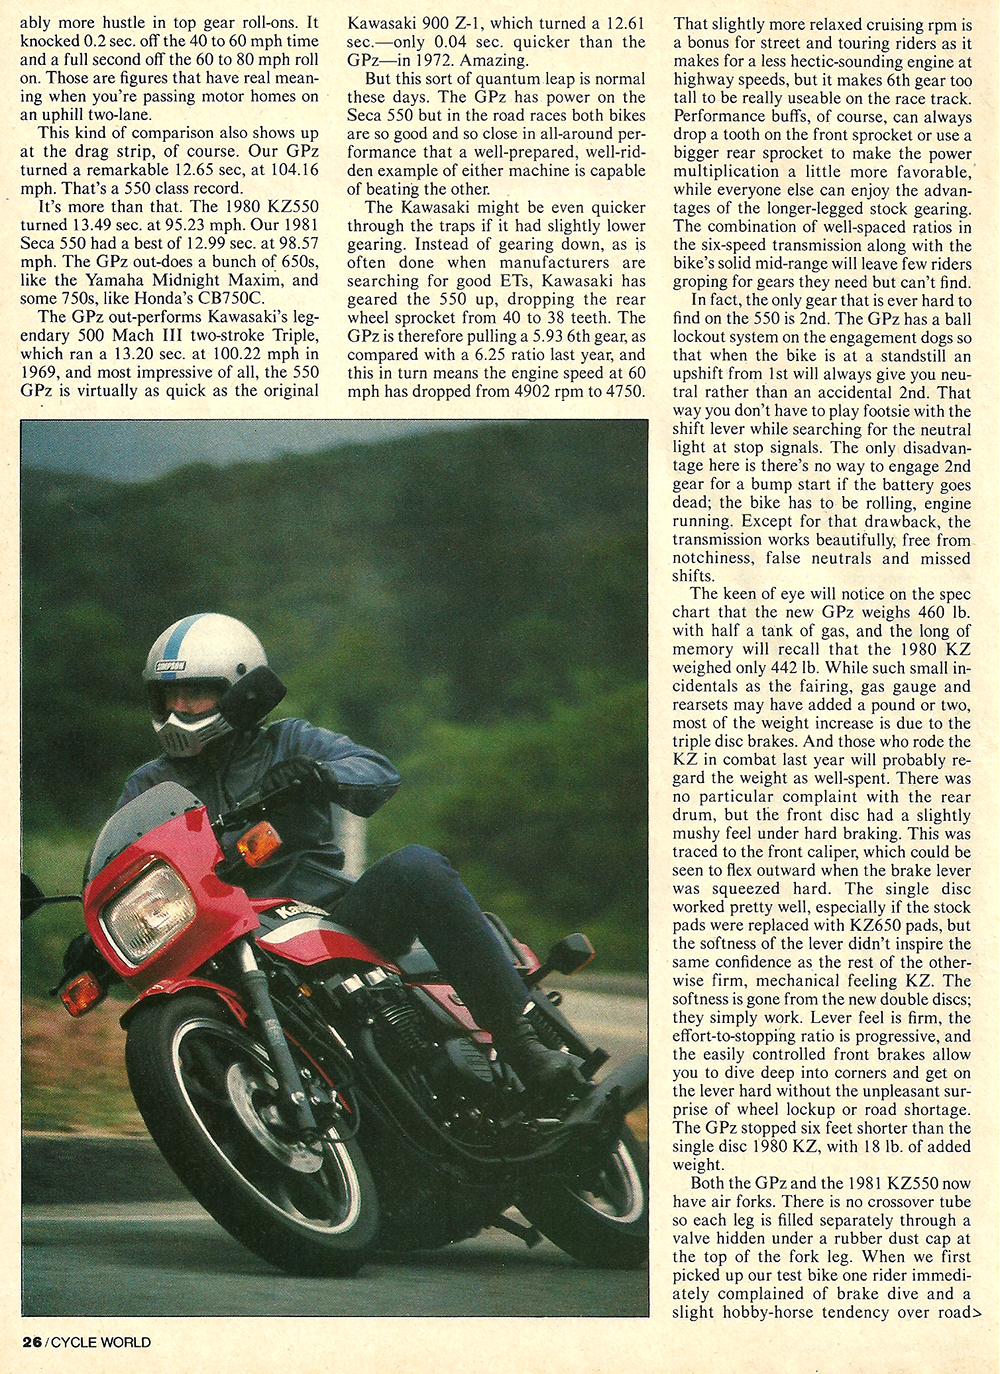 1981 Kawasaki GPz 550 road test 3.jpg